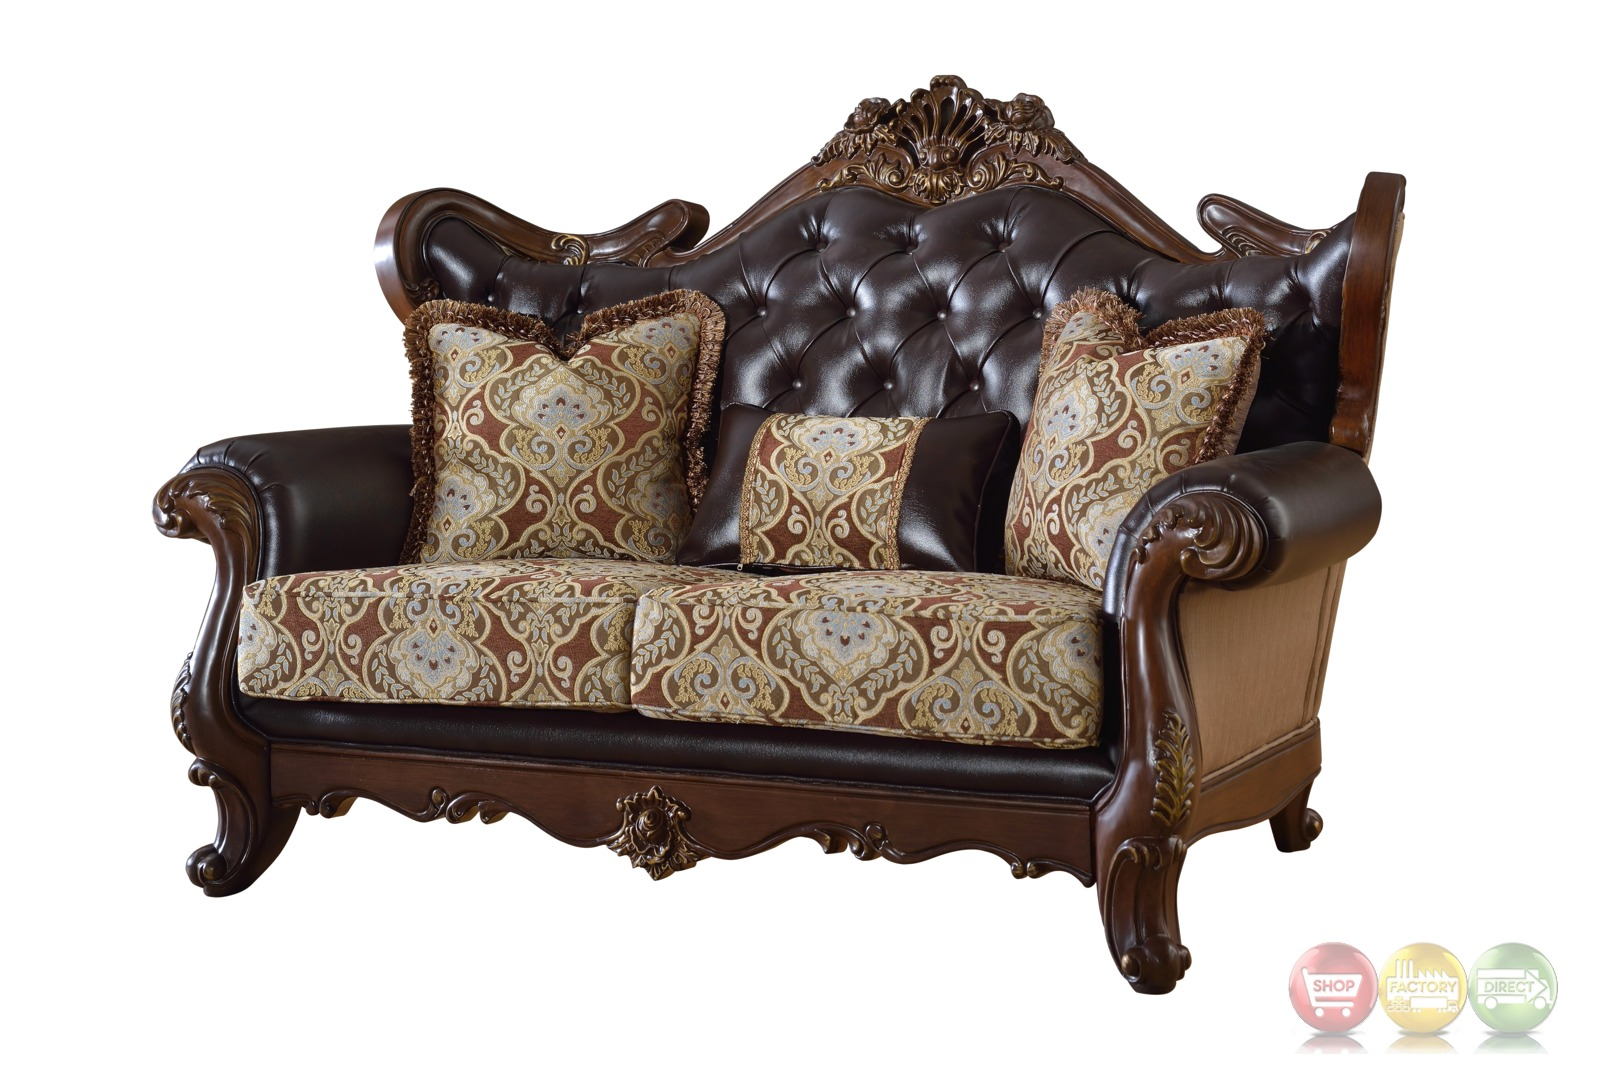 Modena Winged Back Beige Loveseat With Brown Tufted Leather